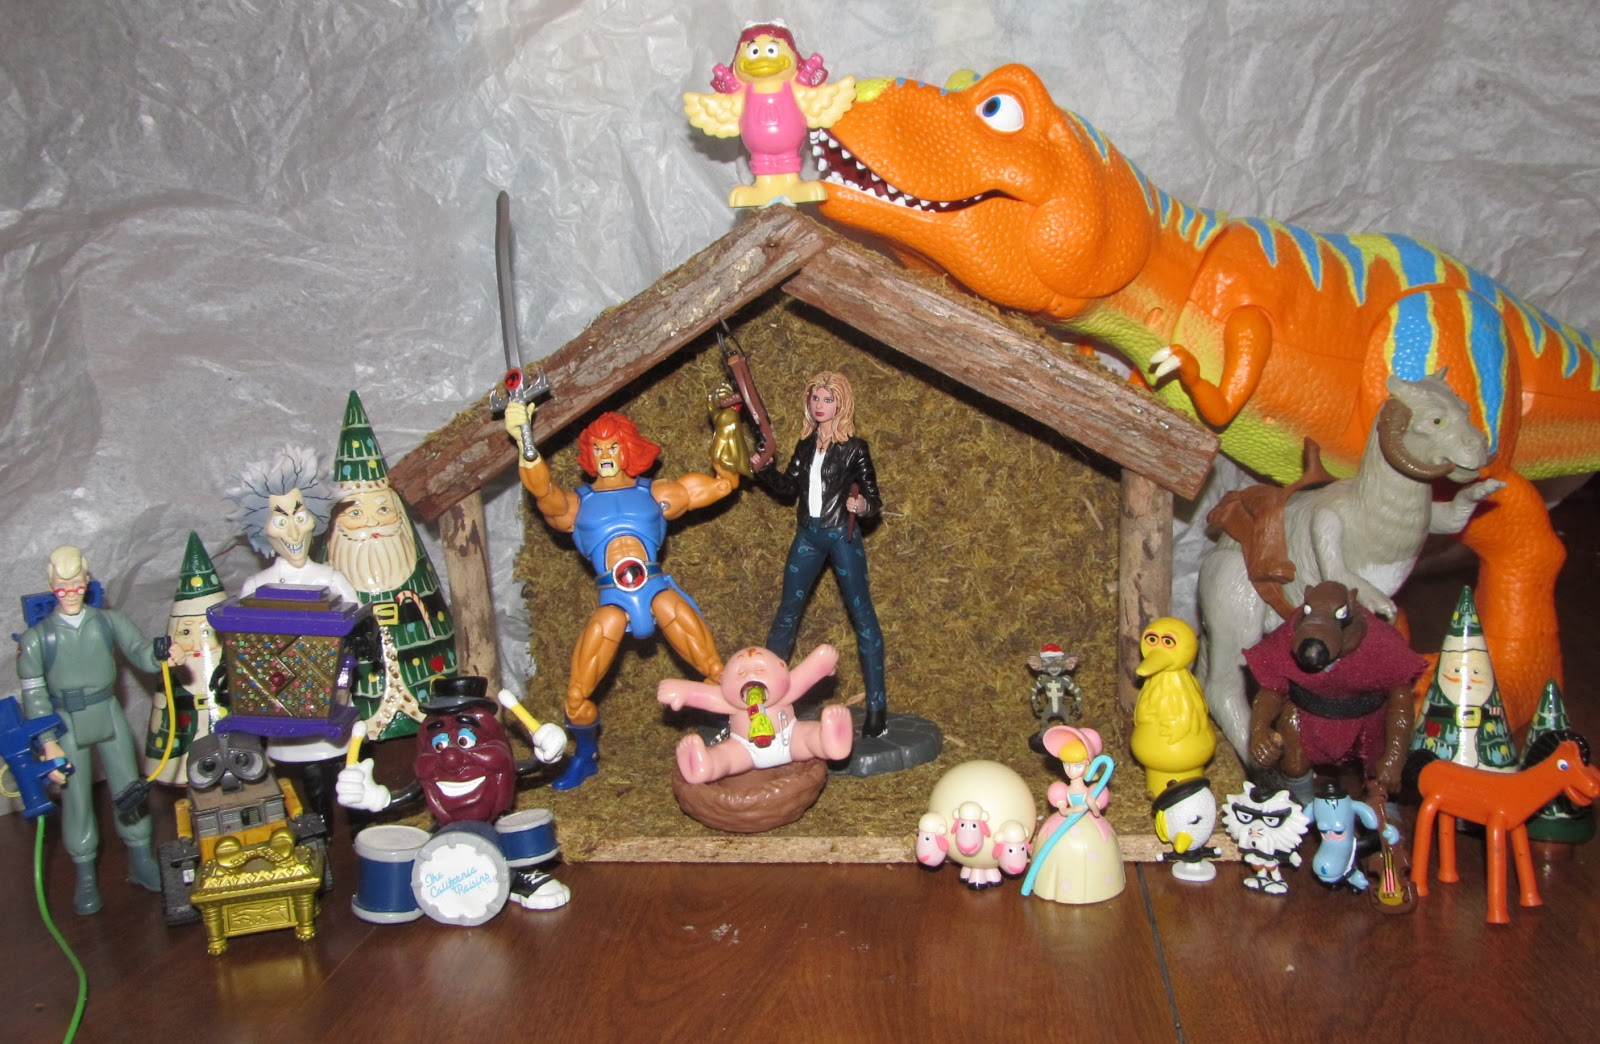 10 Hilarious Or Embarrassing Nativity Sets Epicpew